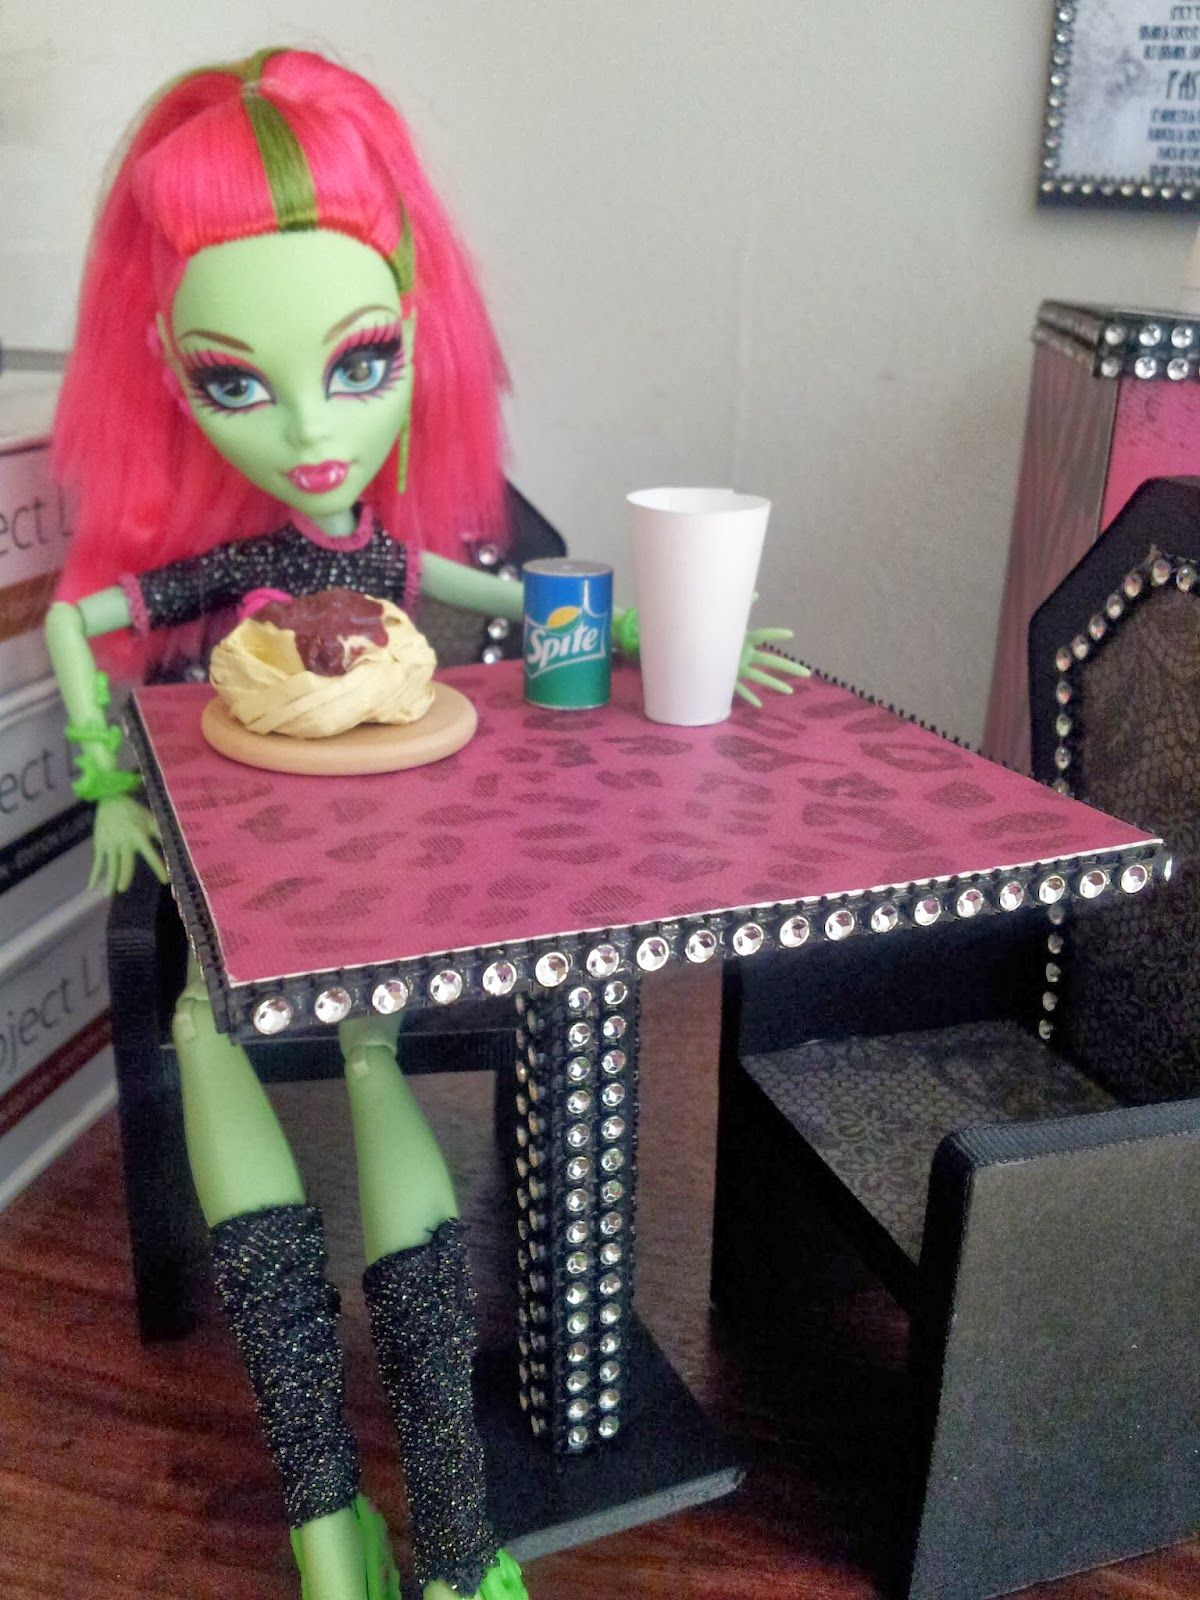 Delicieux Ashley Lynn Impression: DIY Doll Furniture